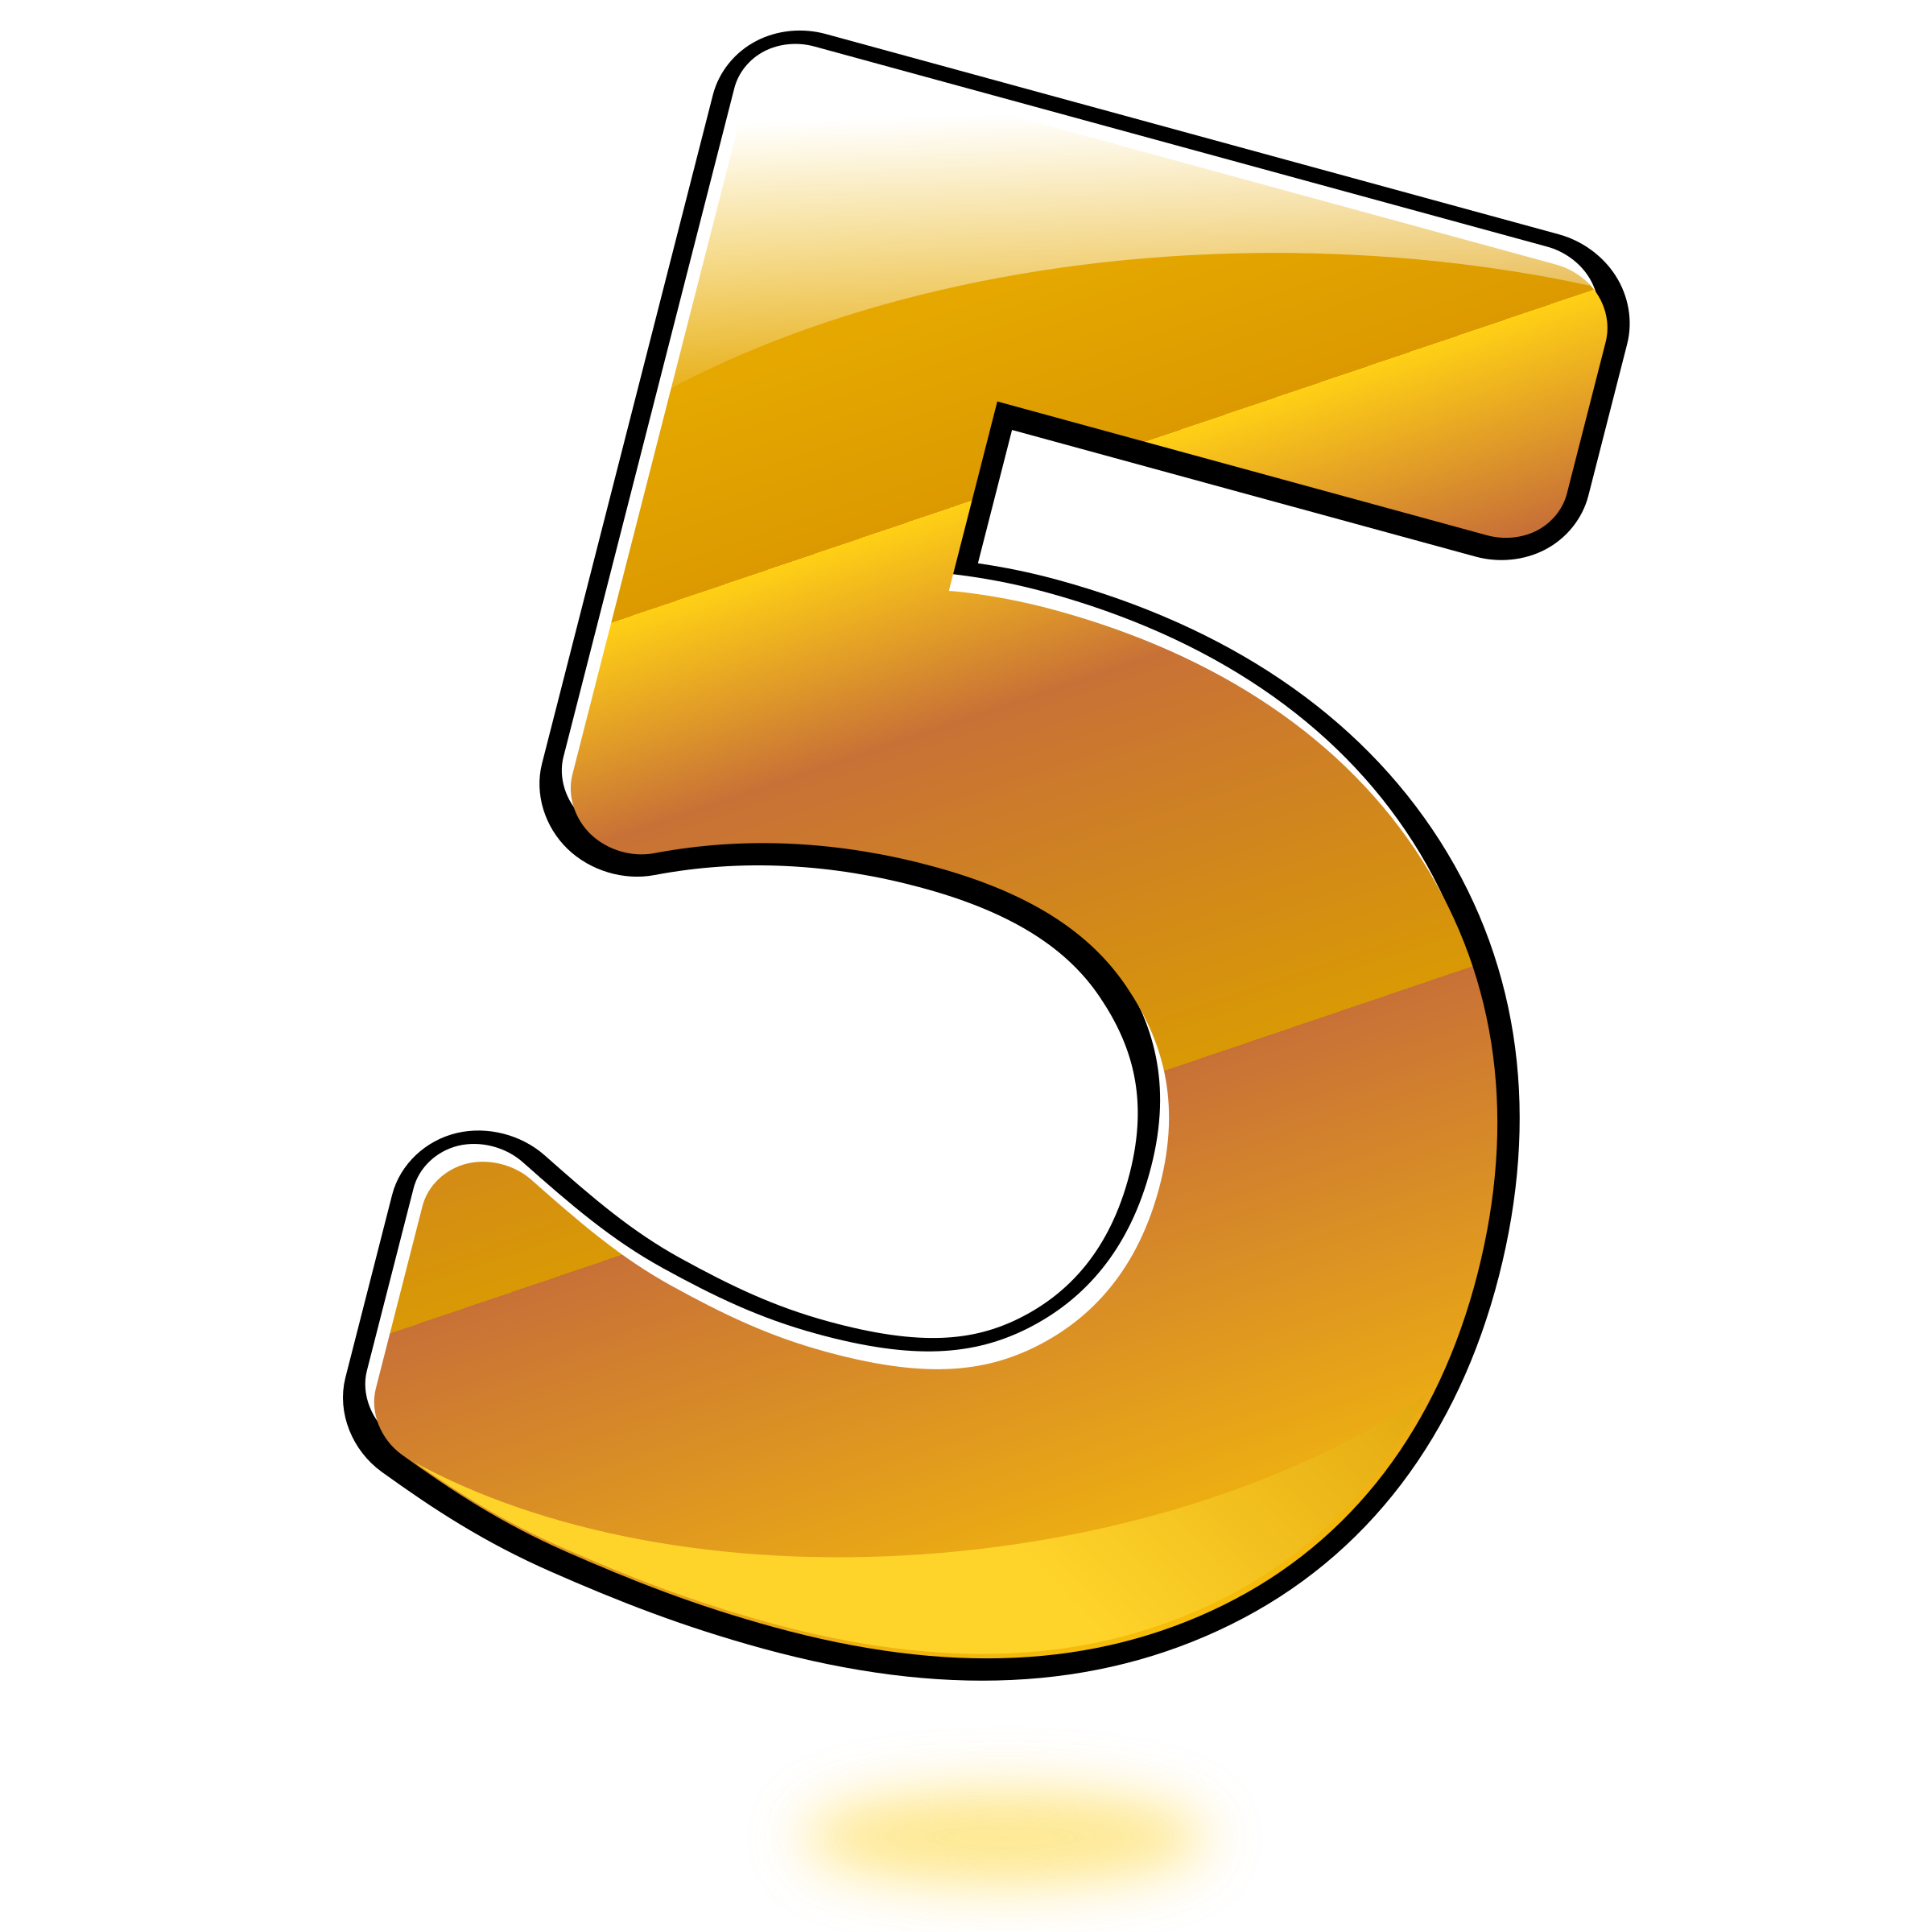 Five clipart #3, Download drawings